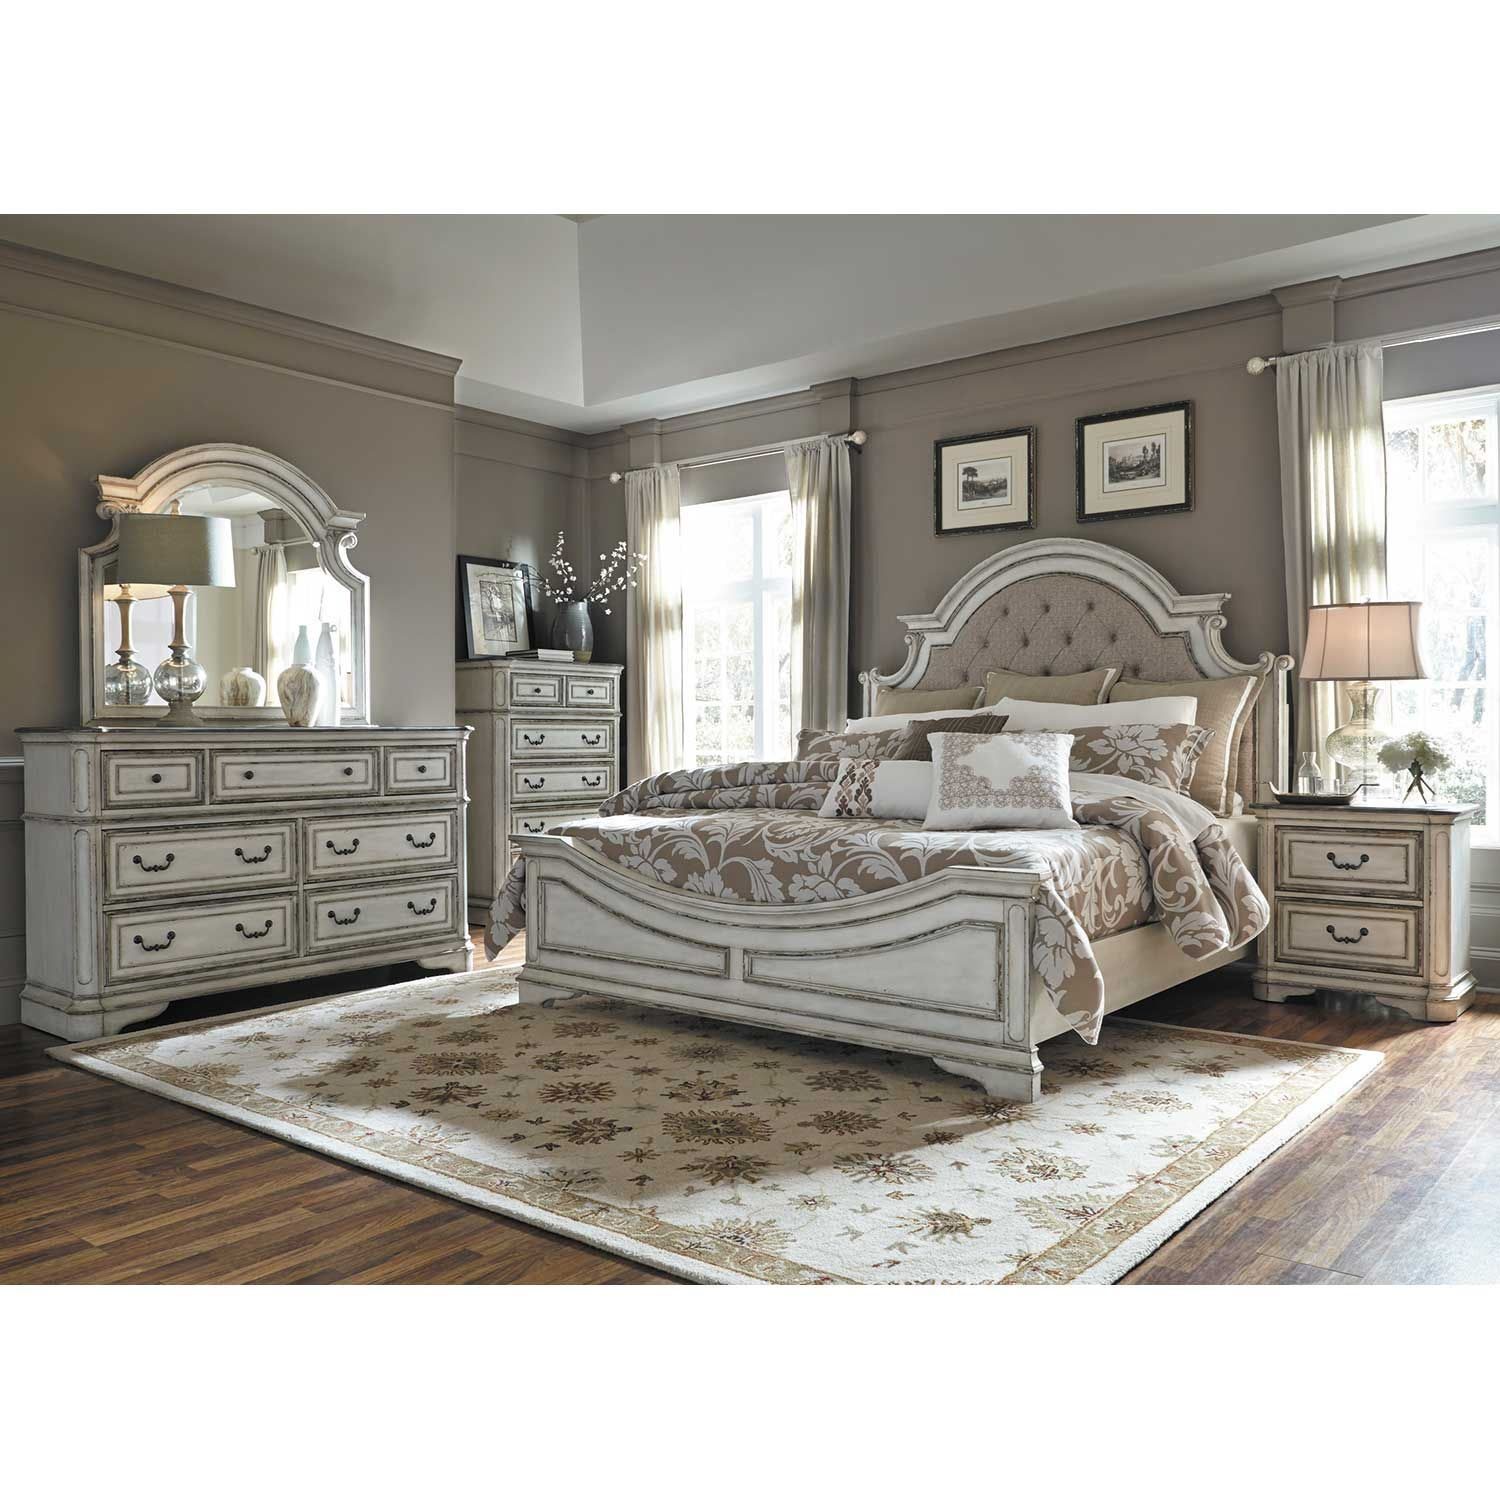 Picture of Magnolia Manor King  Bed